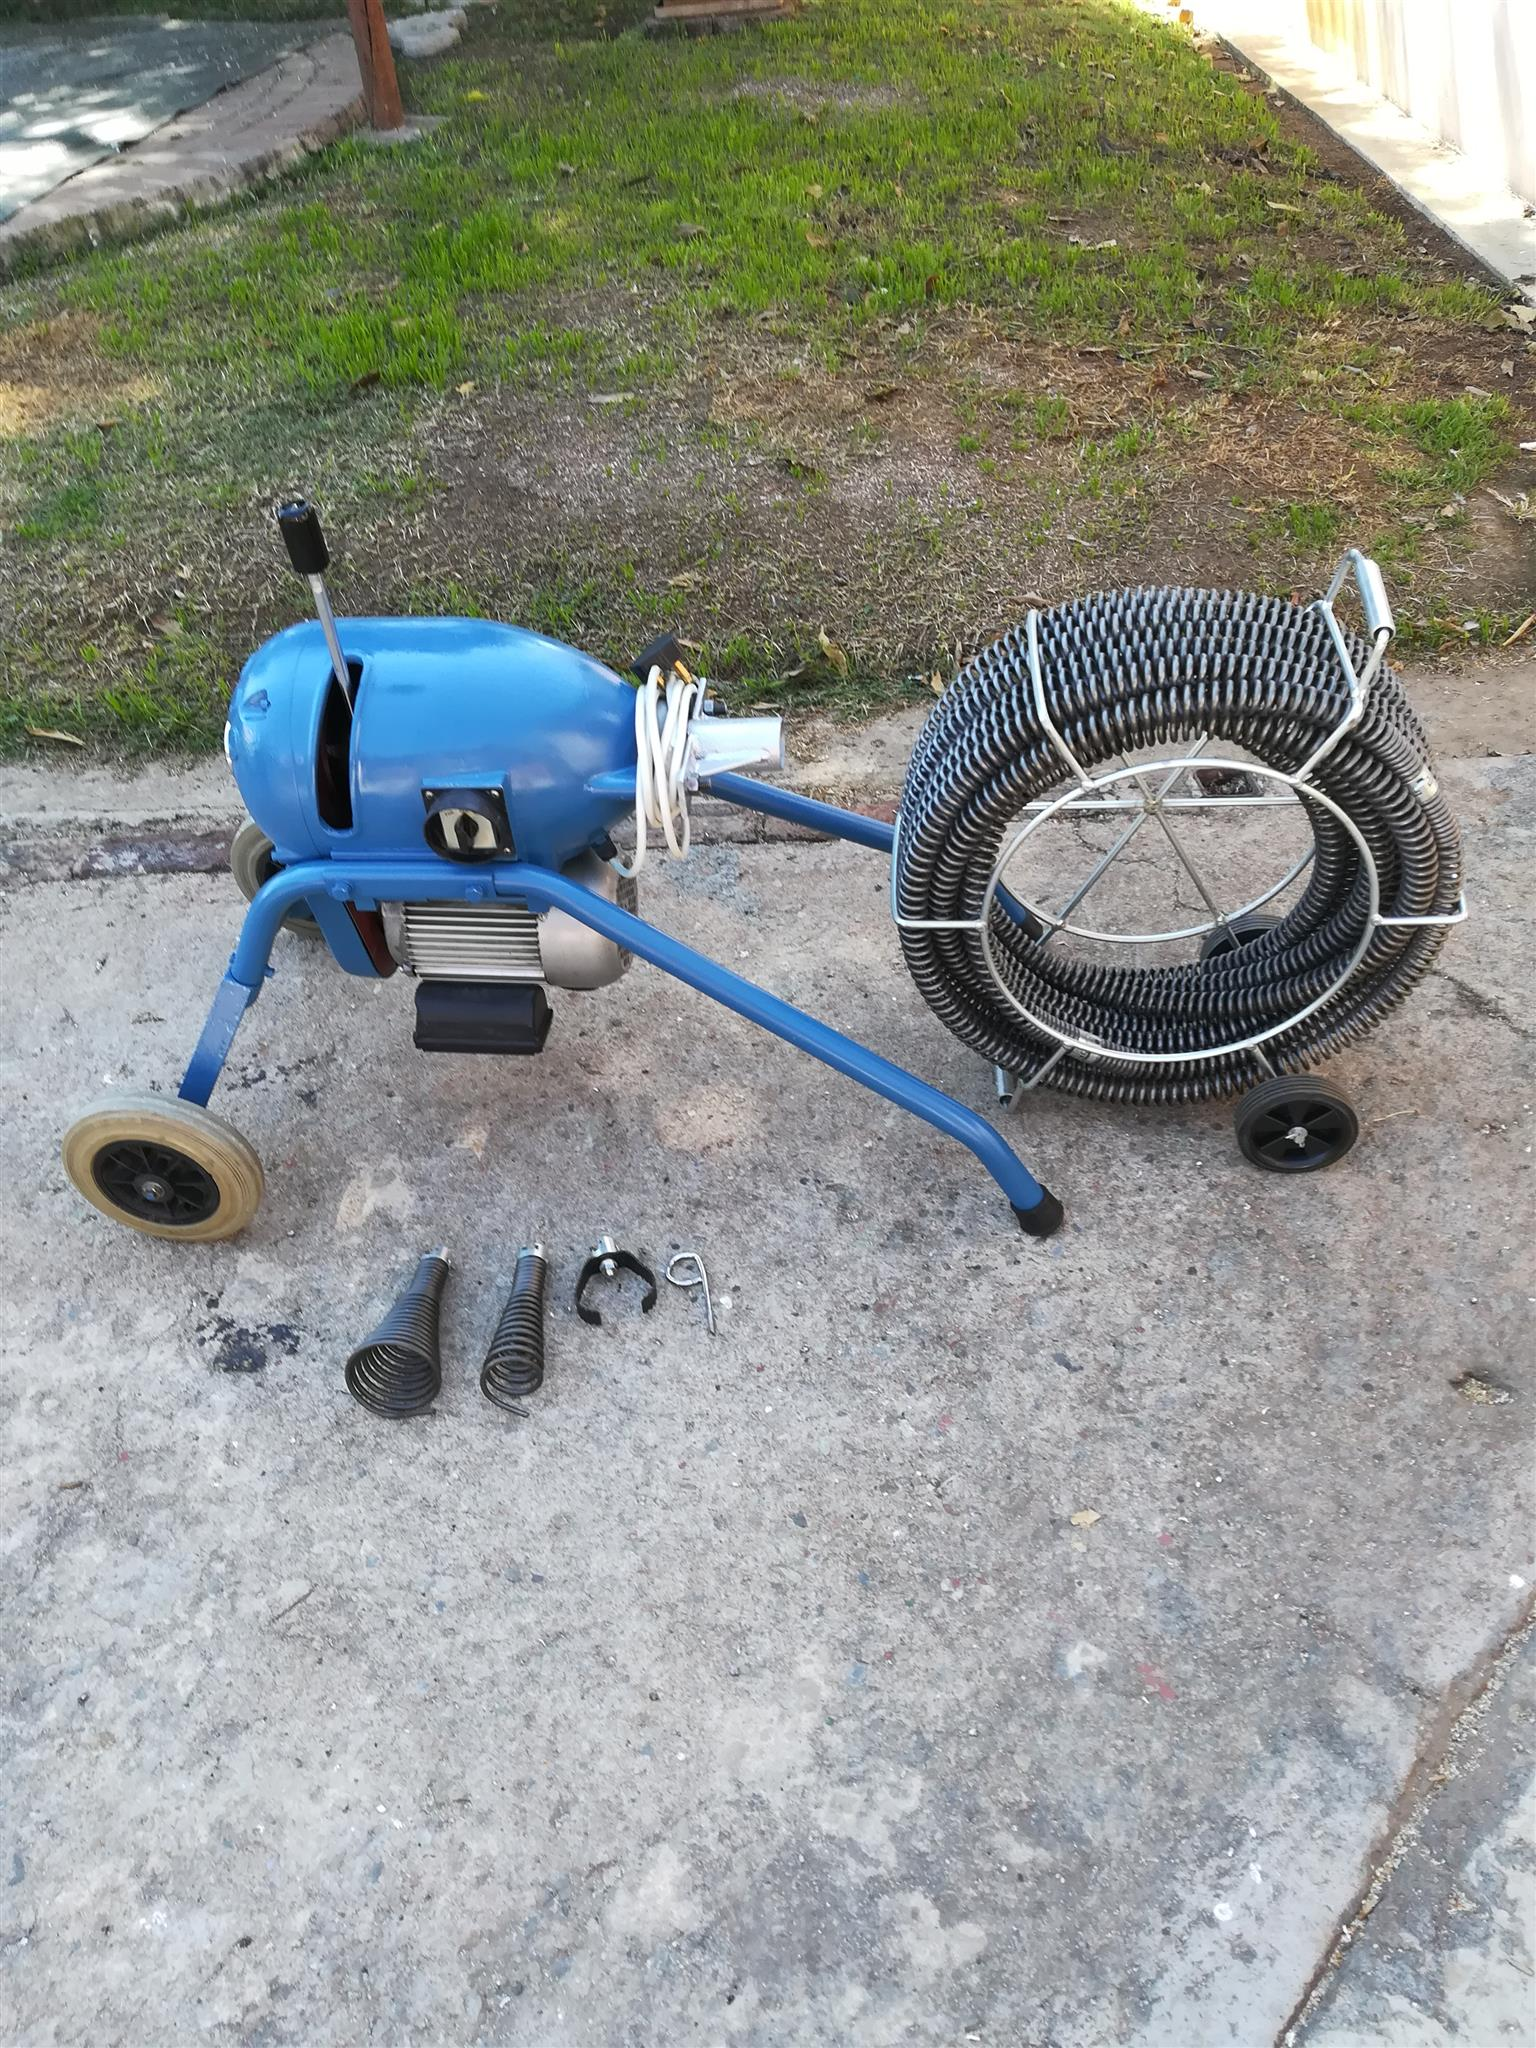 Drain cleaning machine.GQ200 with attachments.